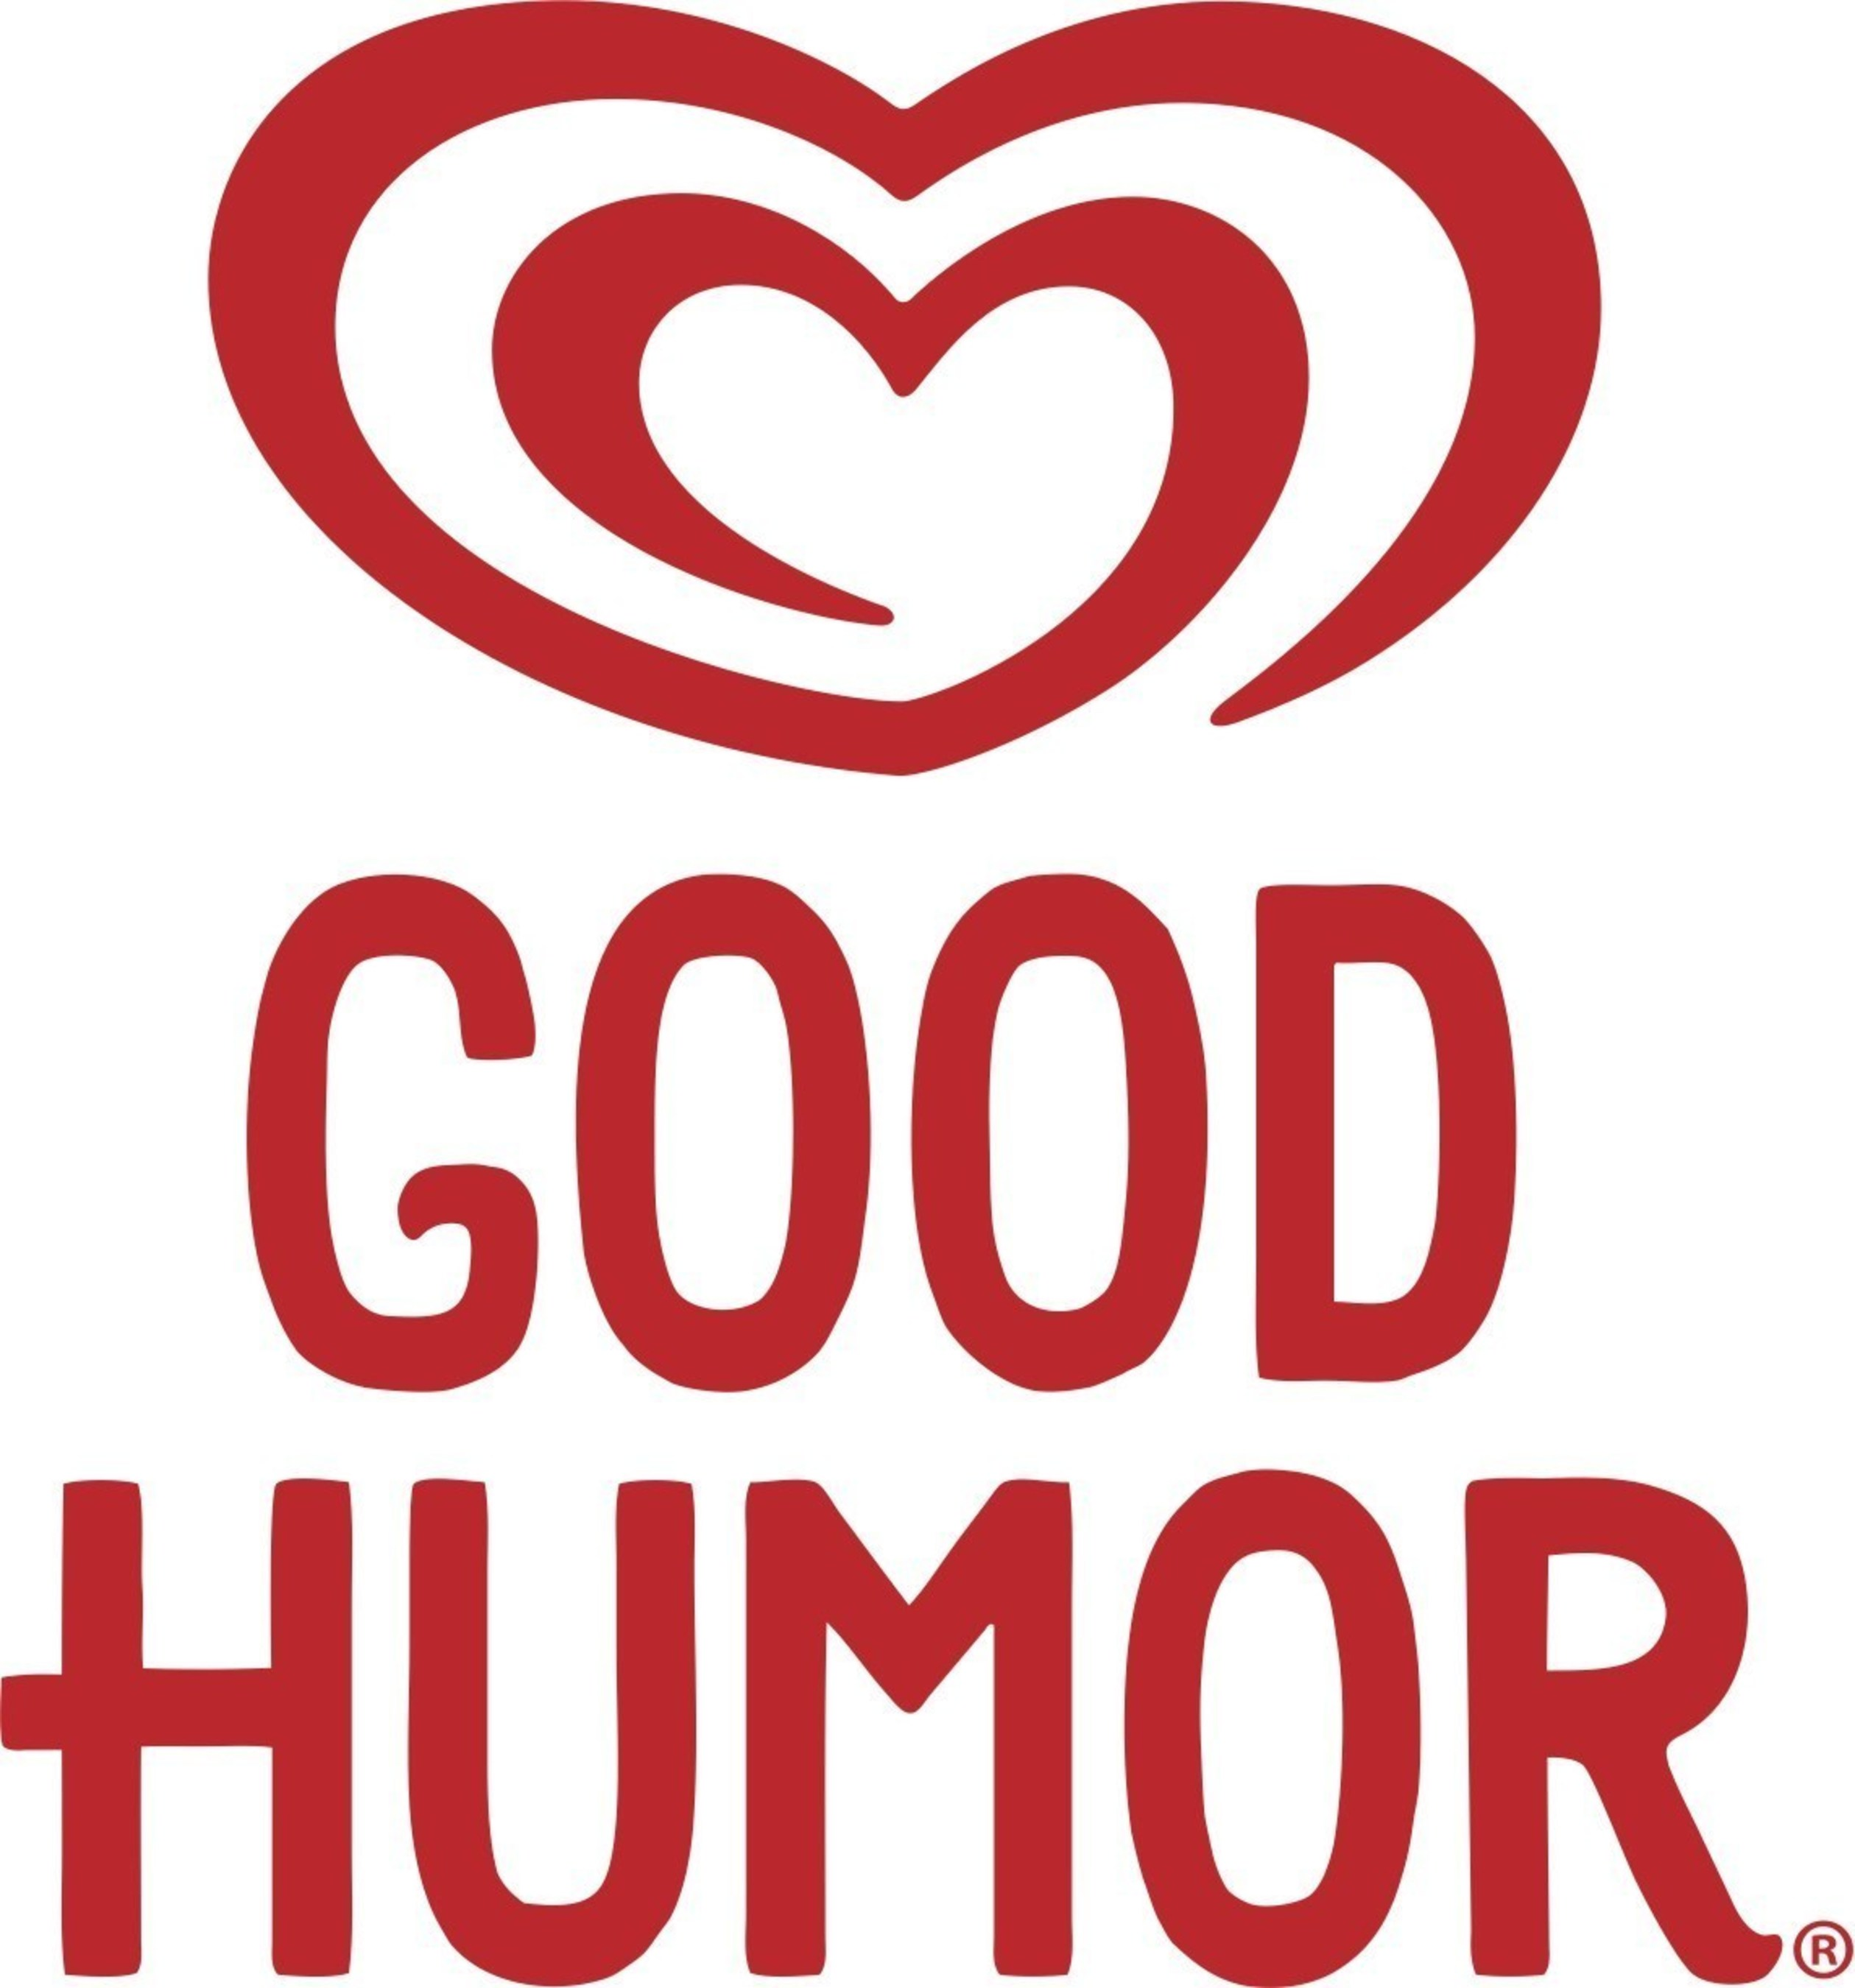 """Good Humor(R) is returning to New York City to kick off the """"Welcome to Joyhood"""" tour that will travel down the East Coast this summer."""